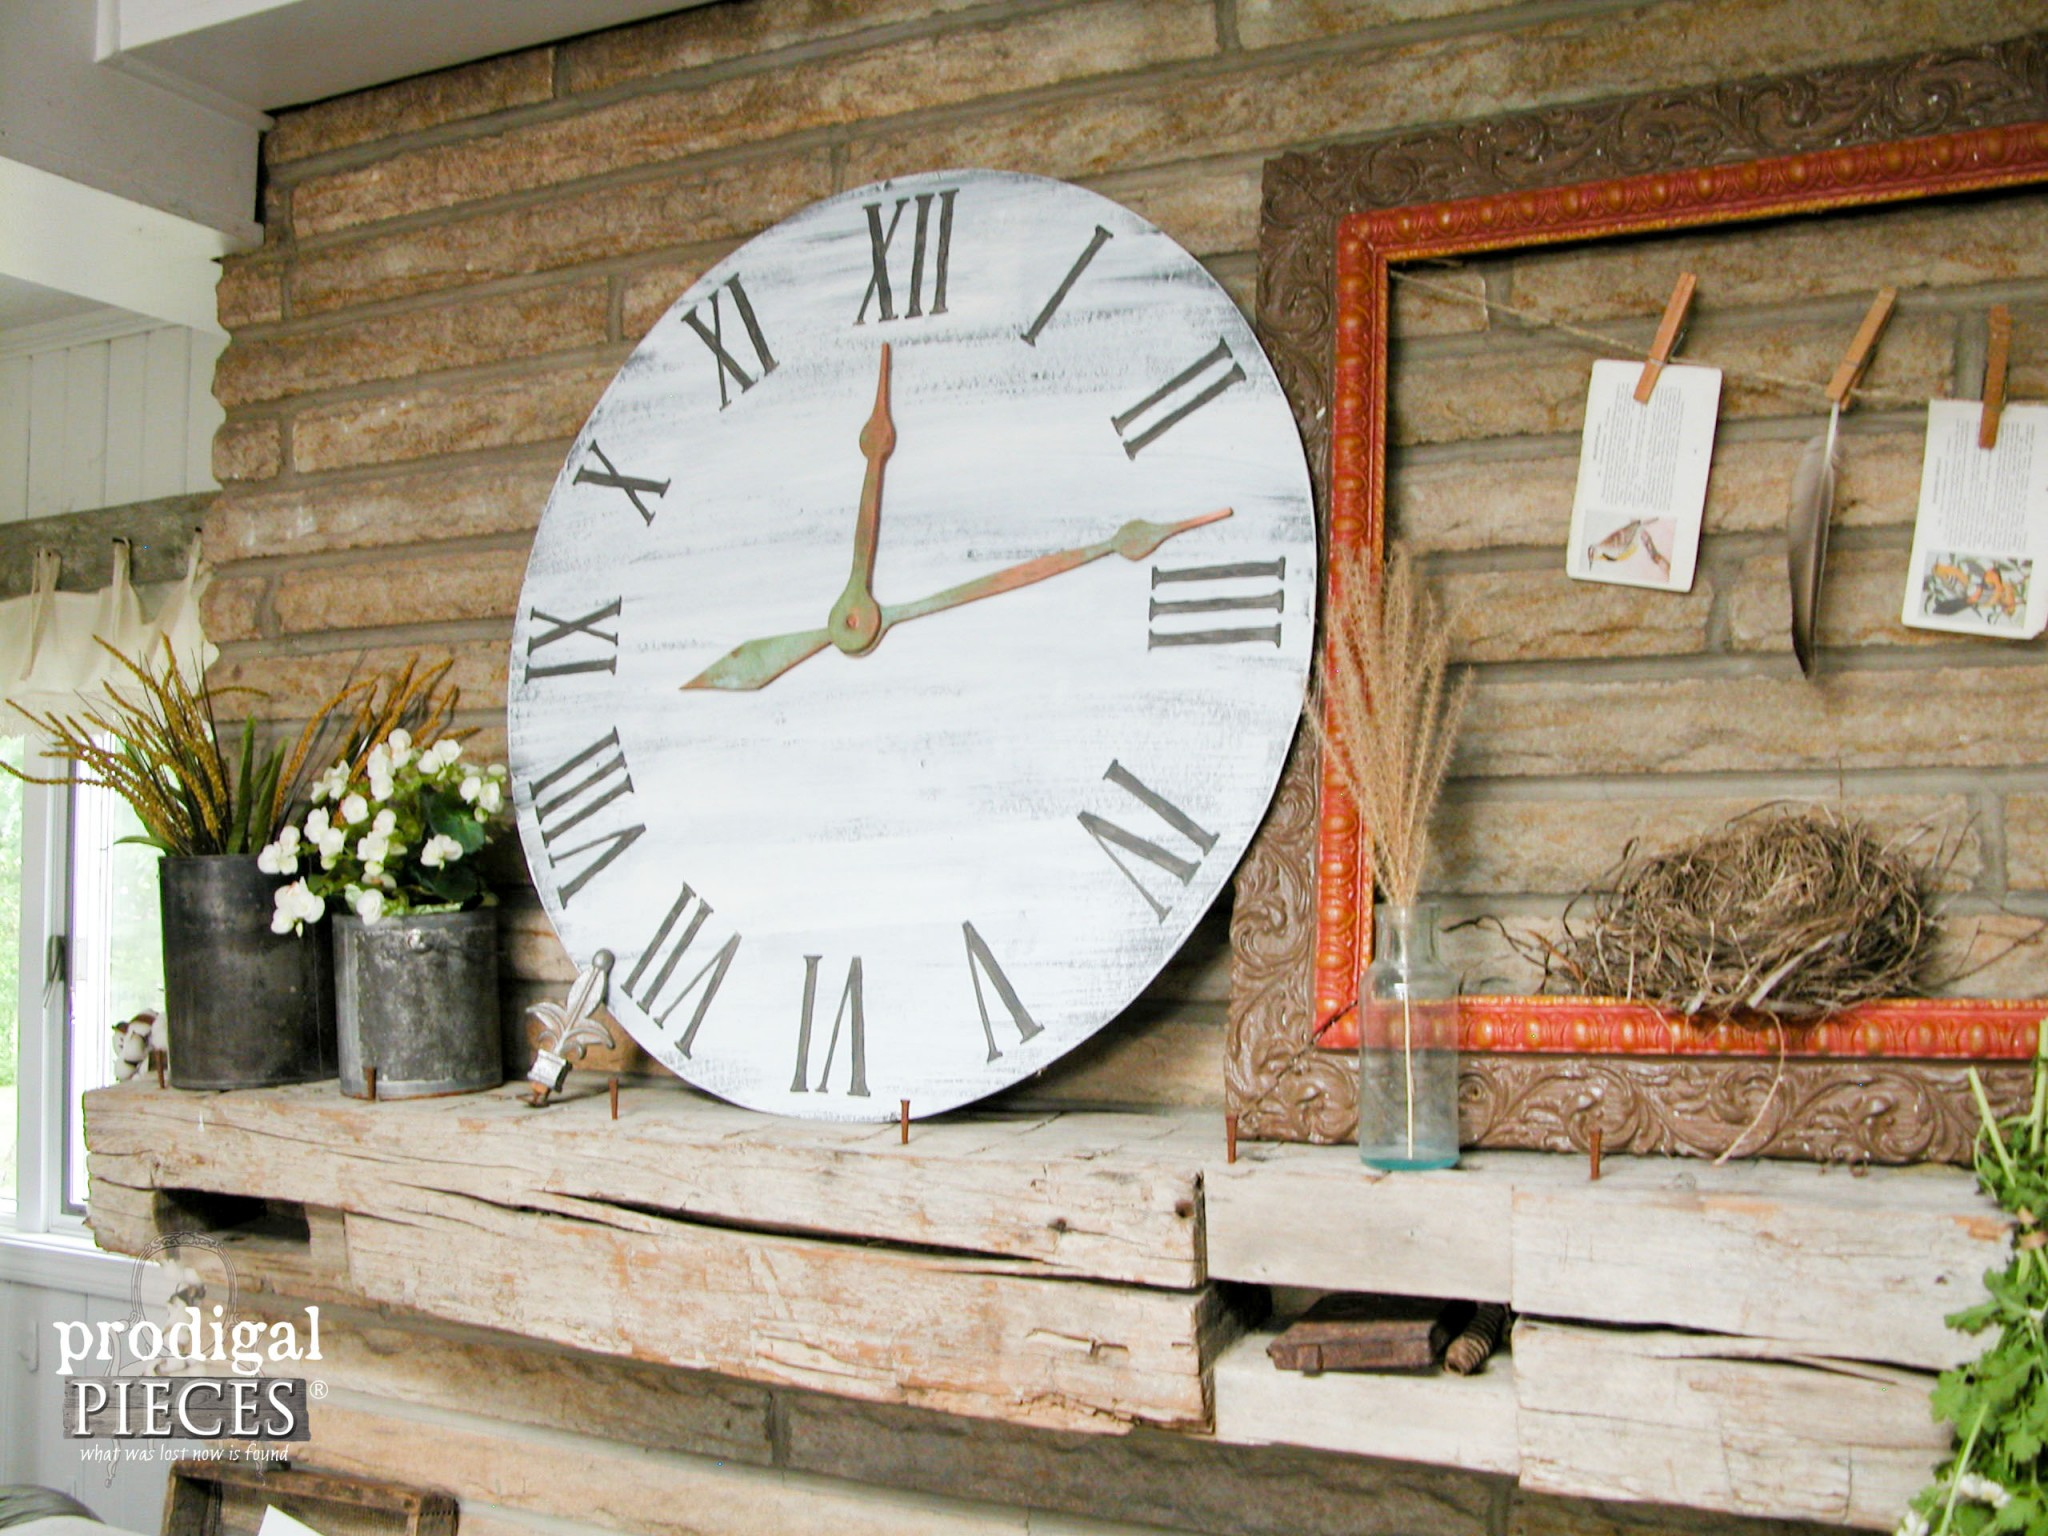 Rustic Farmhouse Mantel with Large Faux Clock by Prodigal Pieces | www.prodigalpieces.com